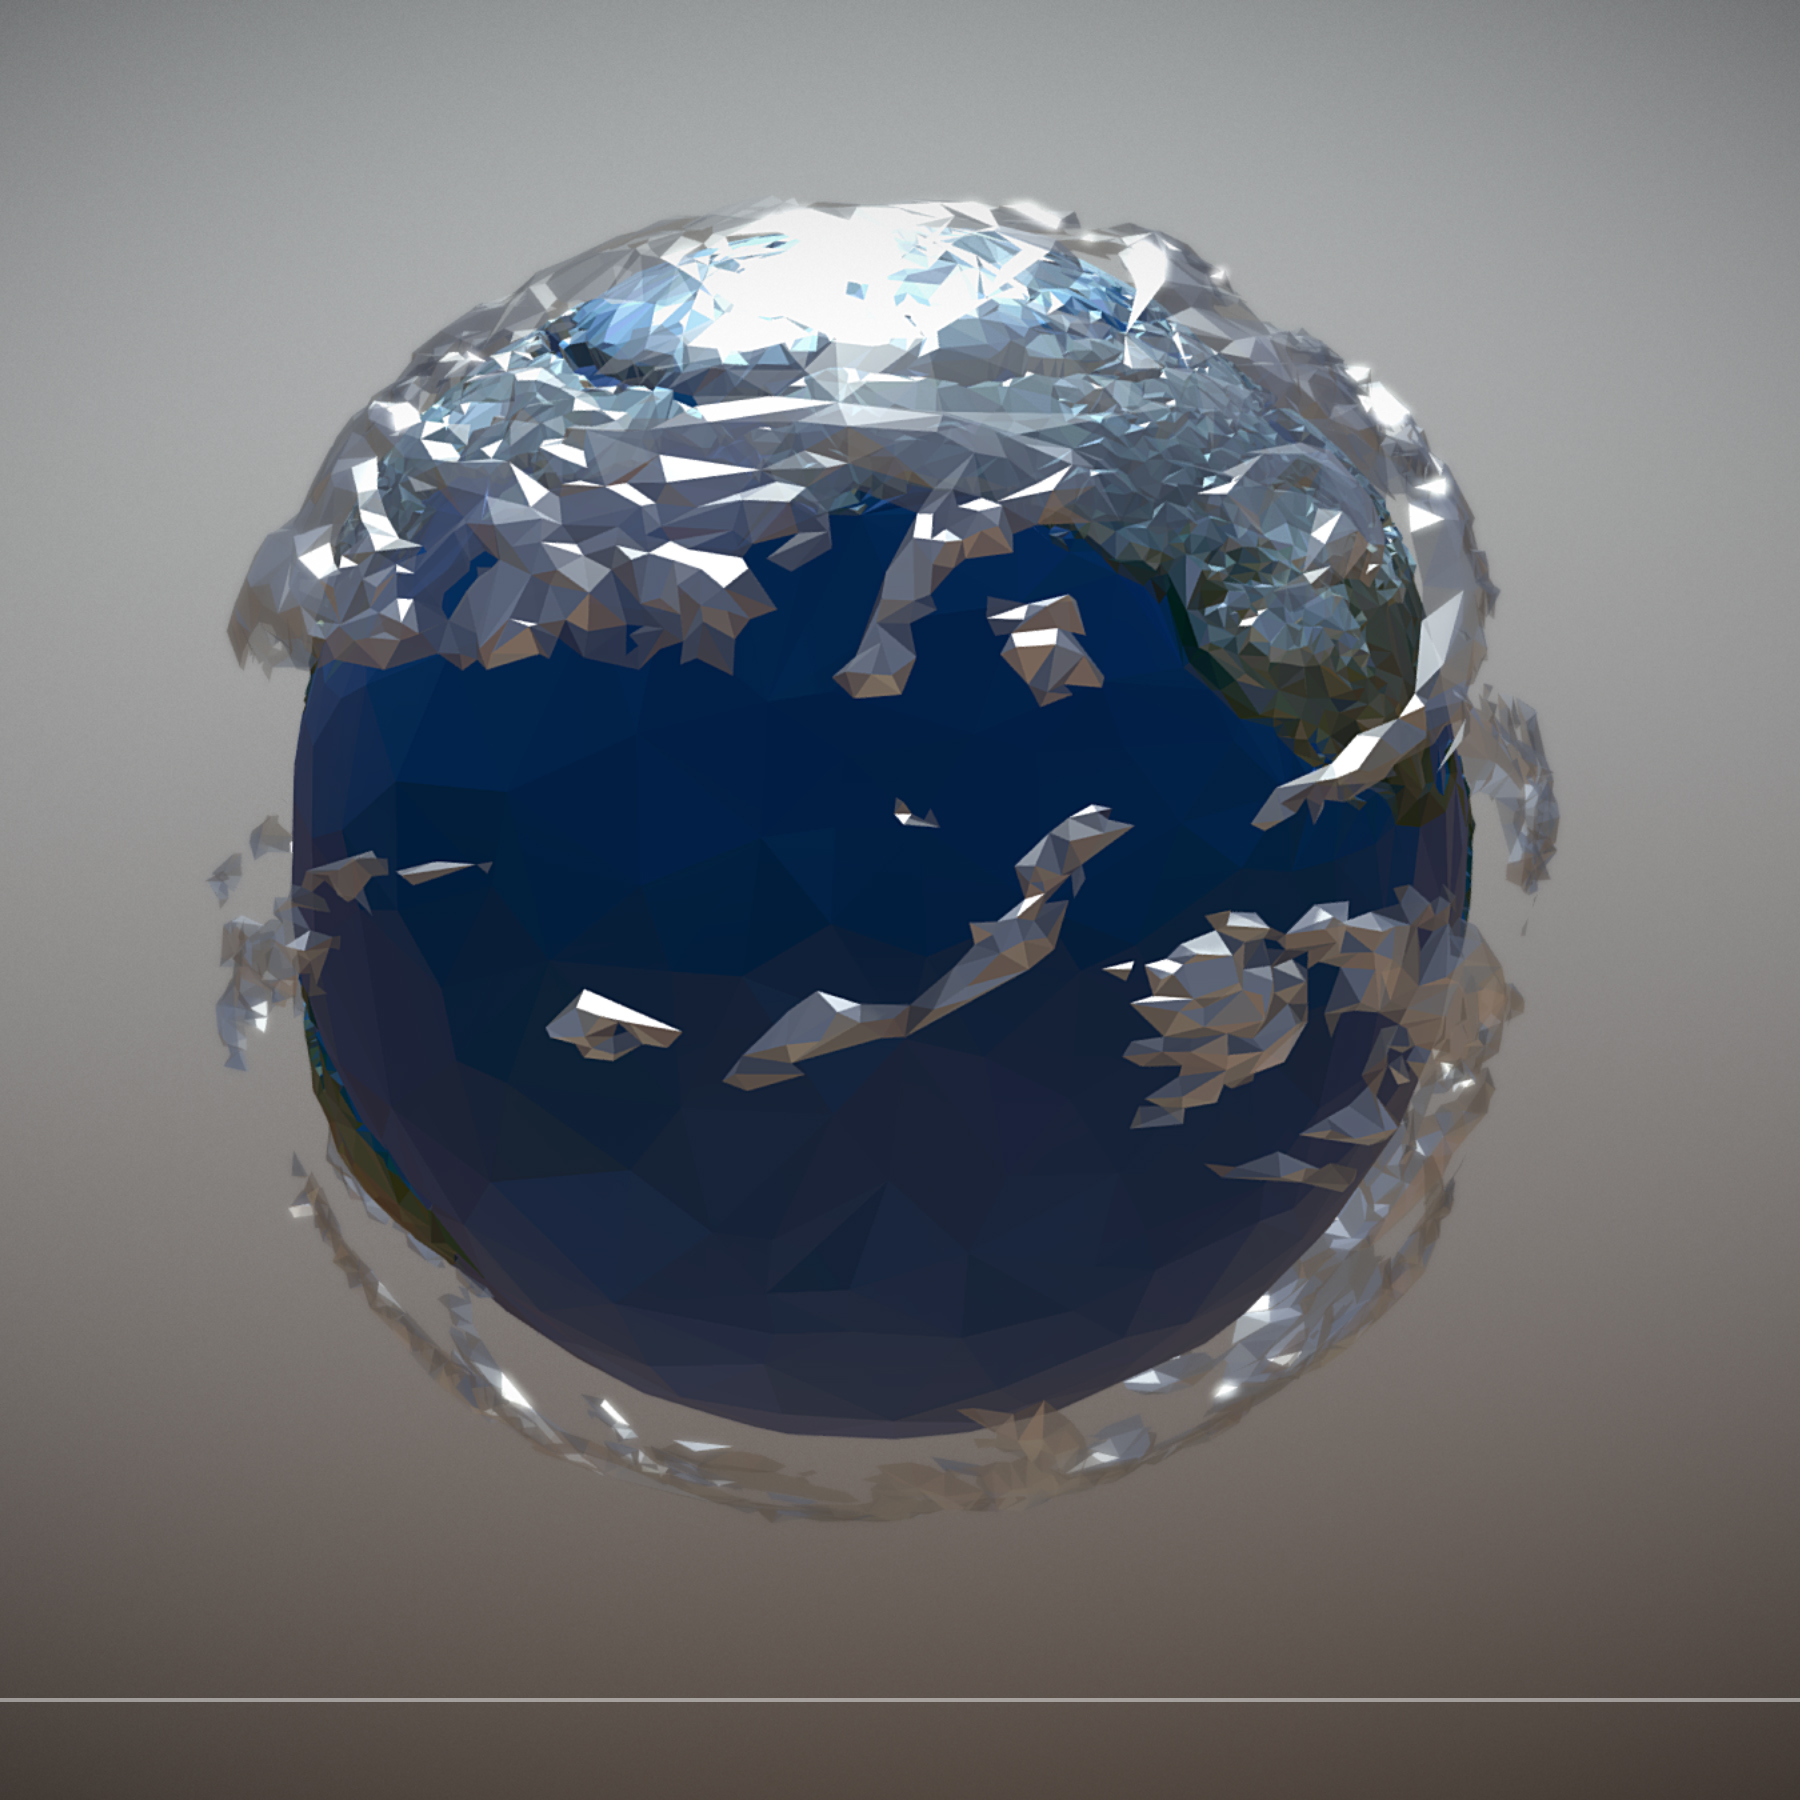 animated planet earth 3d model 3ds max fbx ma mb tga targa icb vda vst pix obj 271043